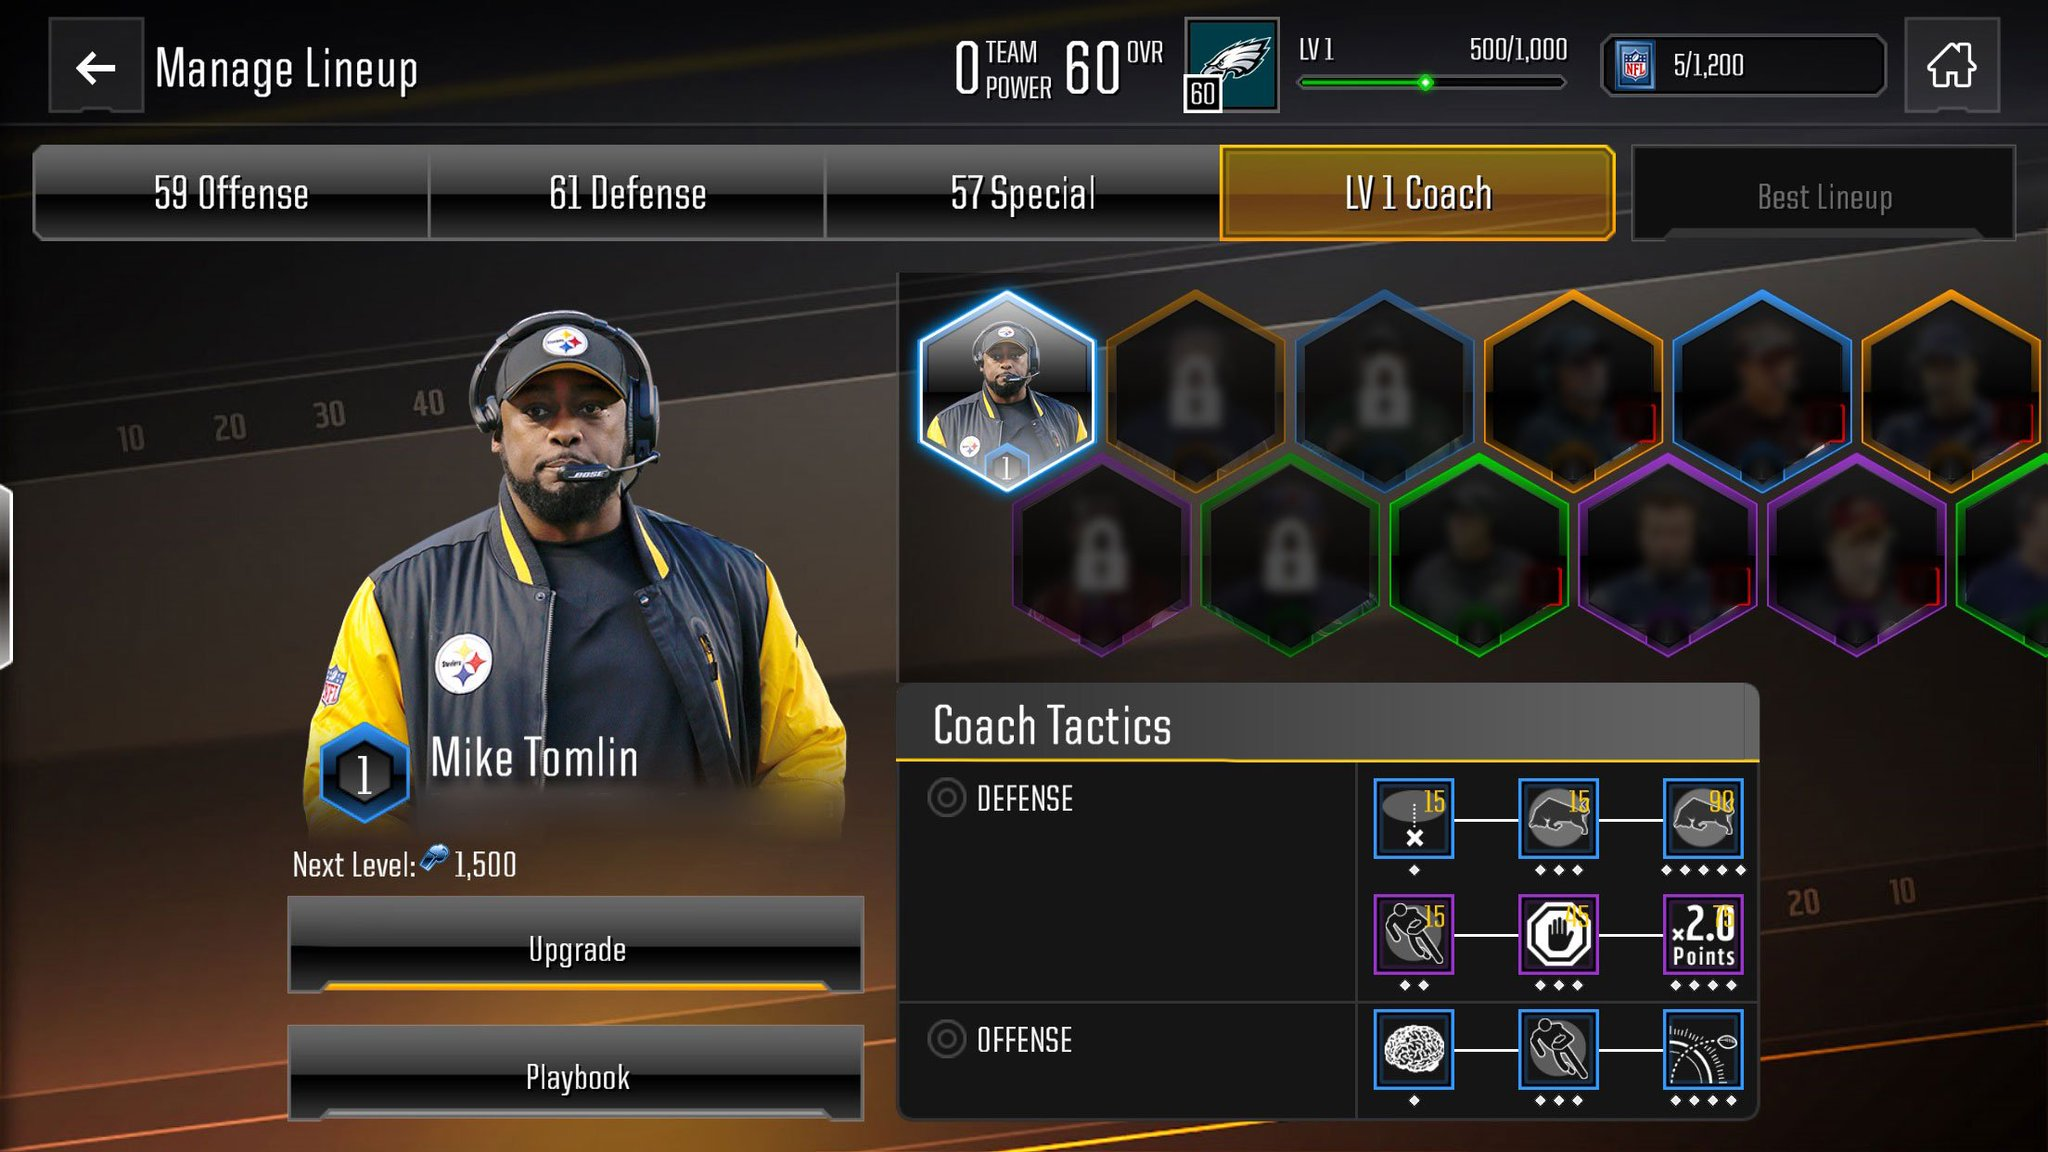 EA post of the Coaching Screen for Overdrive - DISCUSSION - Madden NFL  Mobile Discussion - Madden NFL Mobile - Madden NFL 19 Forums - Muthead f93db3ab4